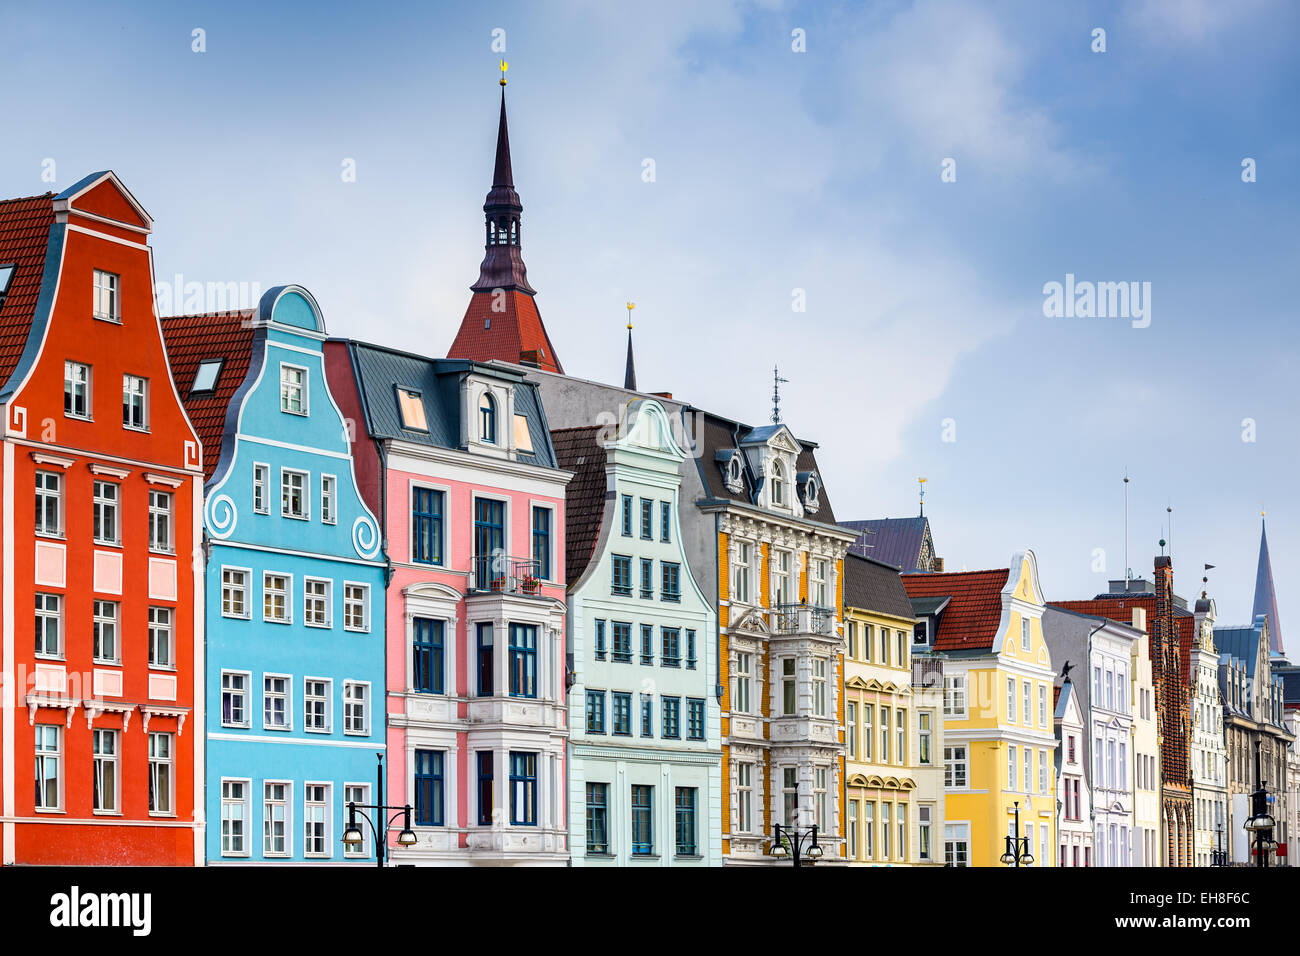 Rostock, Germany old town cityscape. - Stock Image